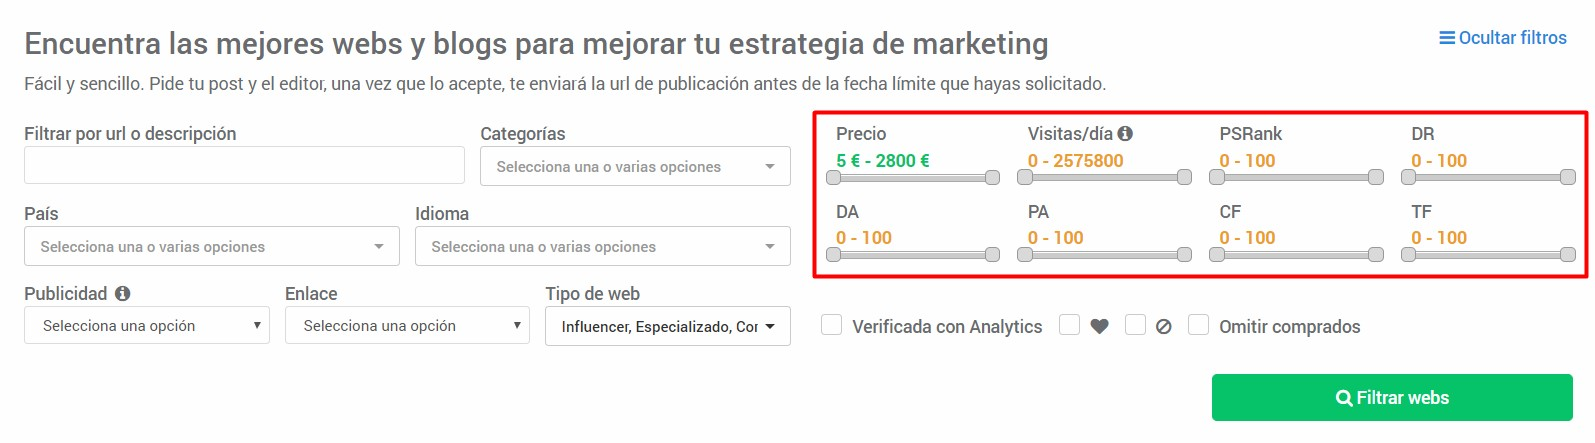 Backlinks de calidad con publisuites